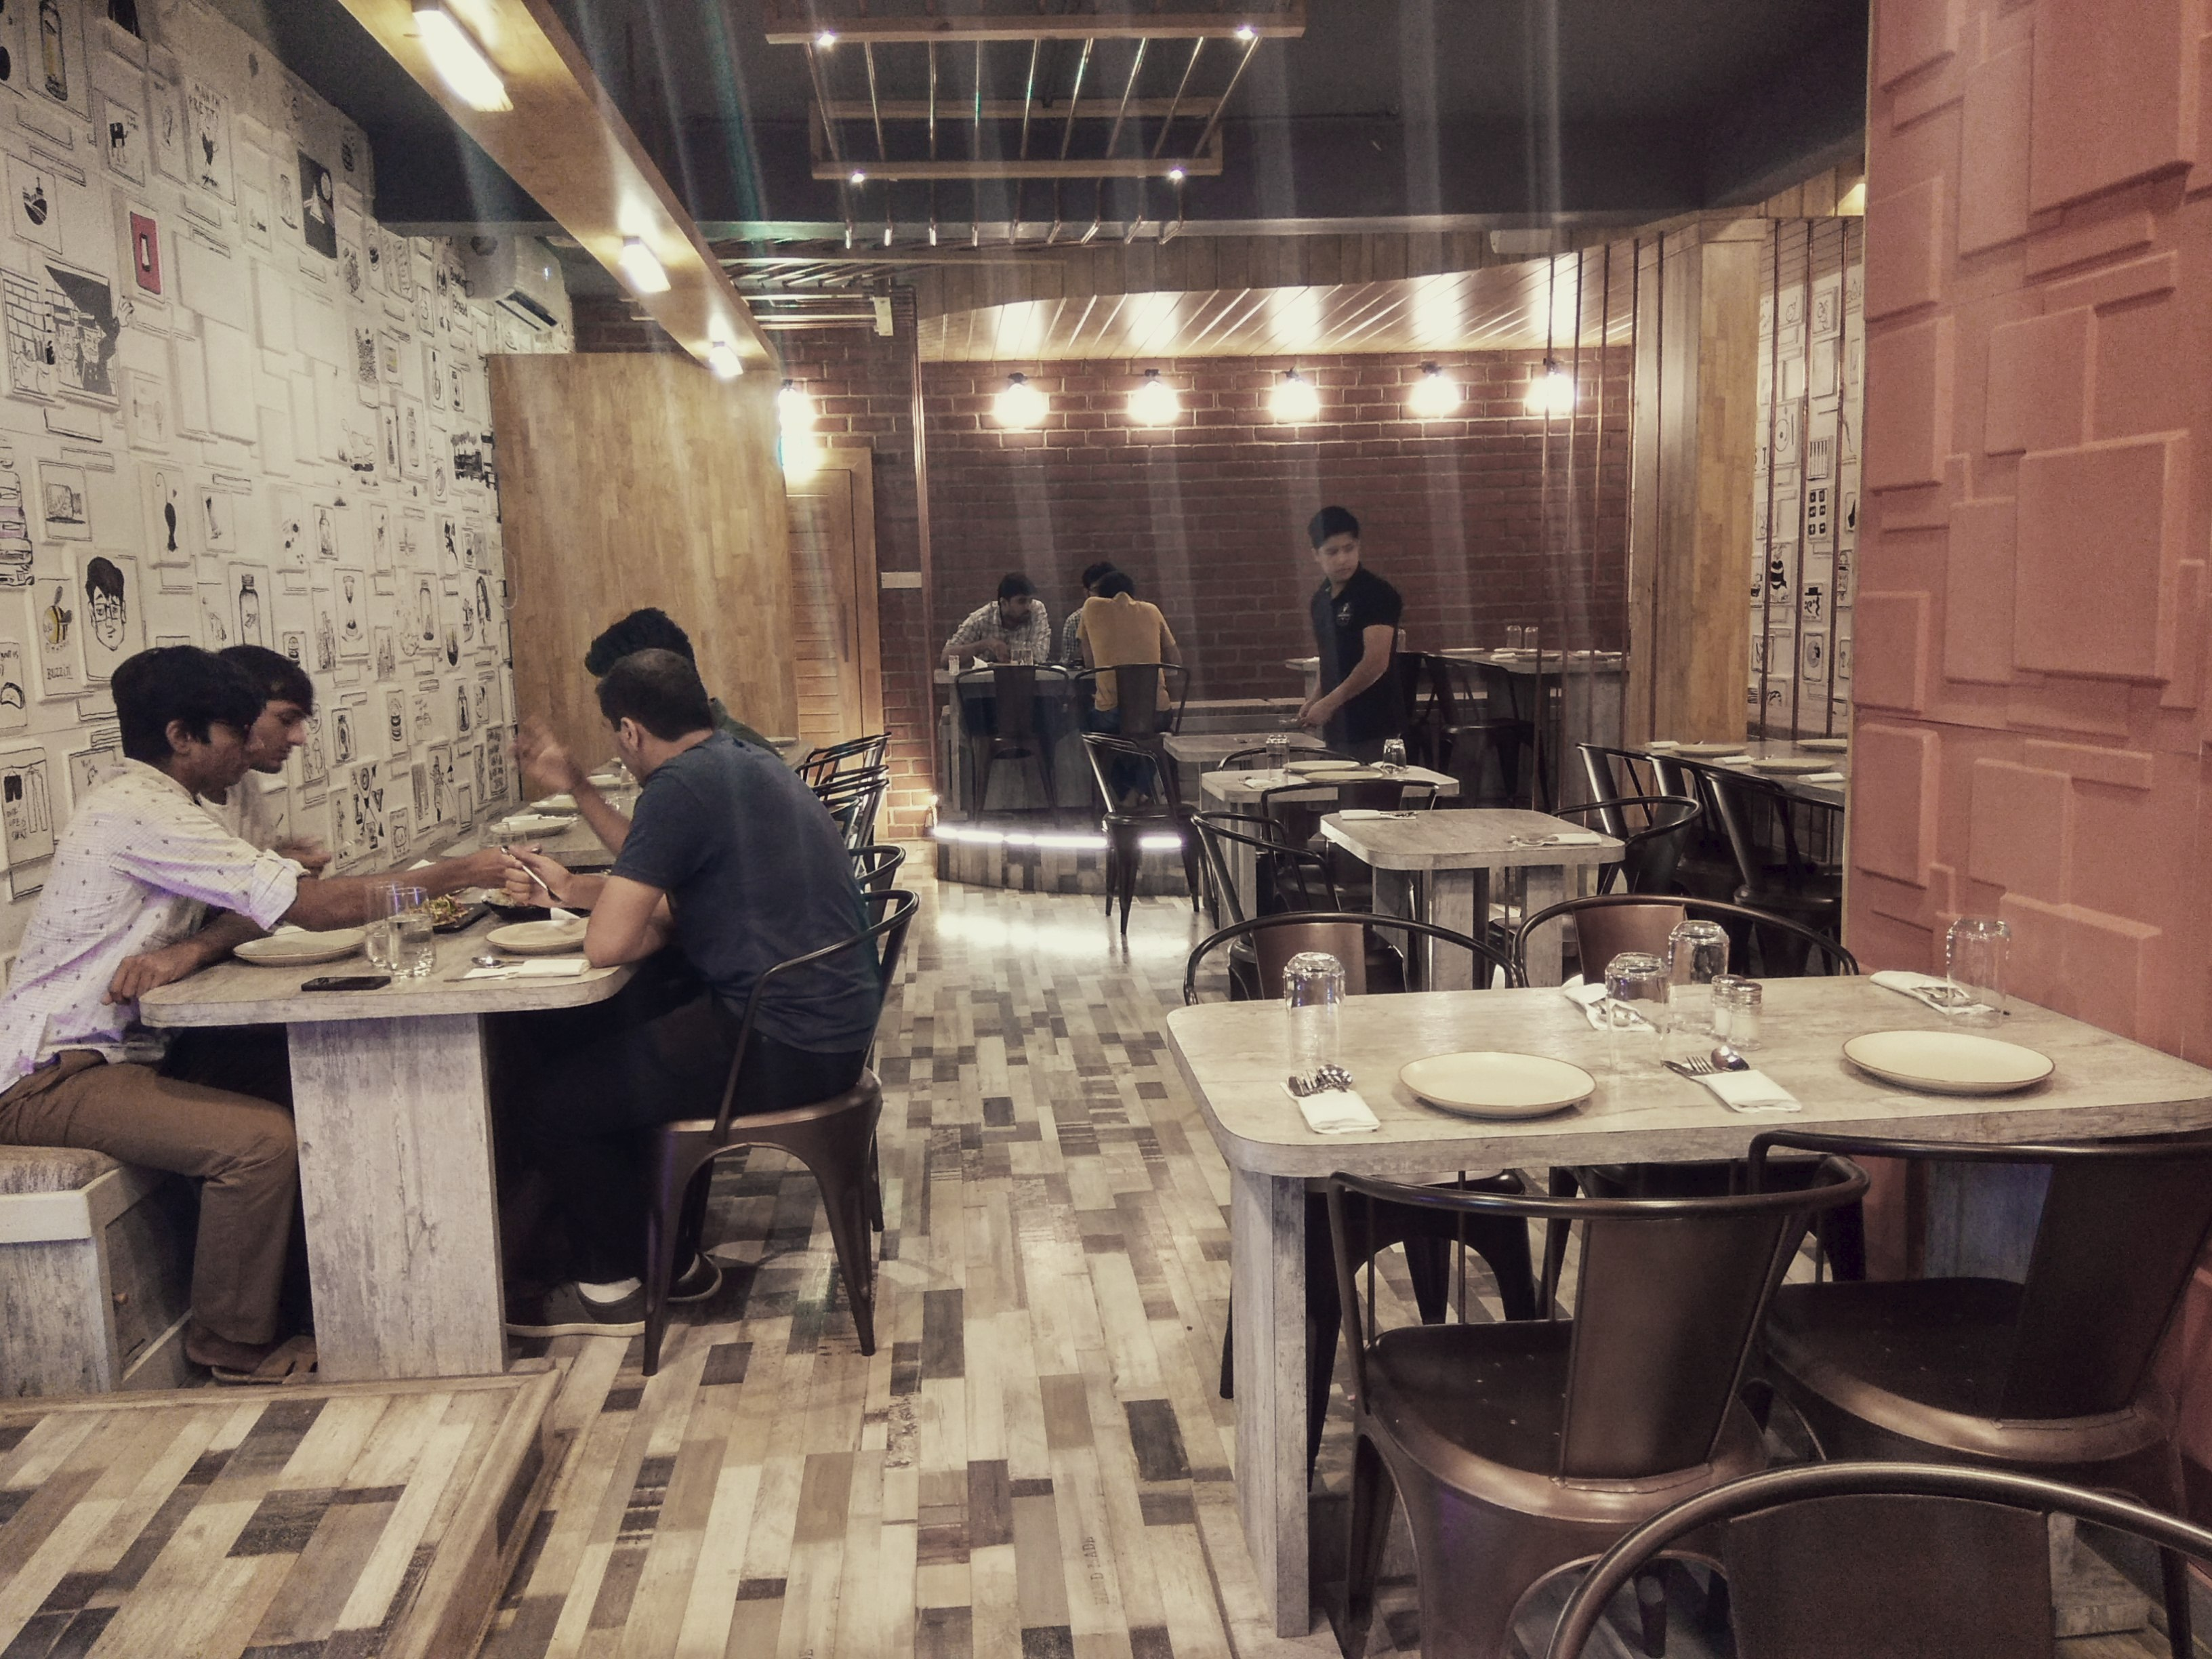 NSoJ Restaurant Review: A hearty and energetic start to the day at this cosy outlet